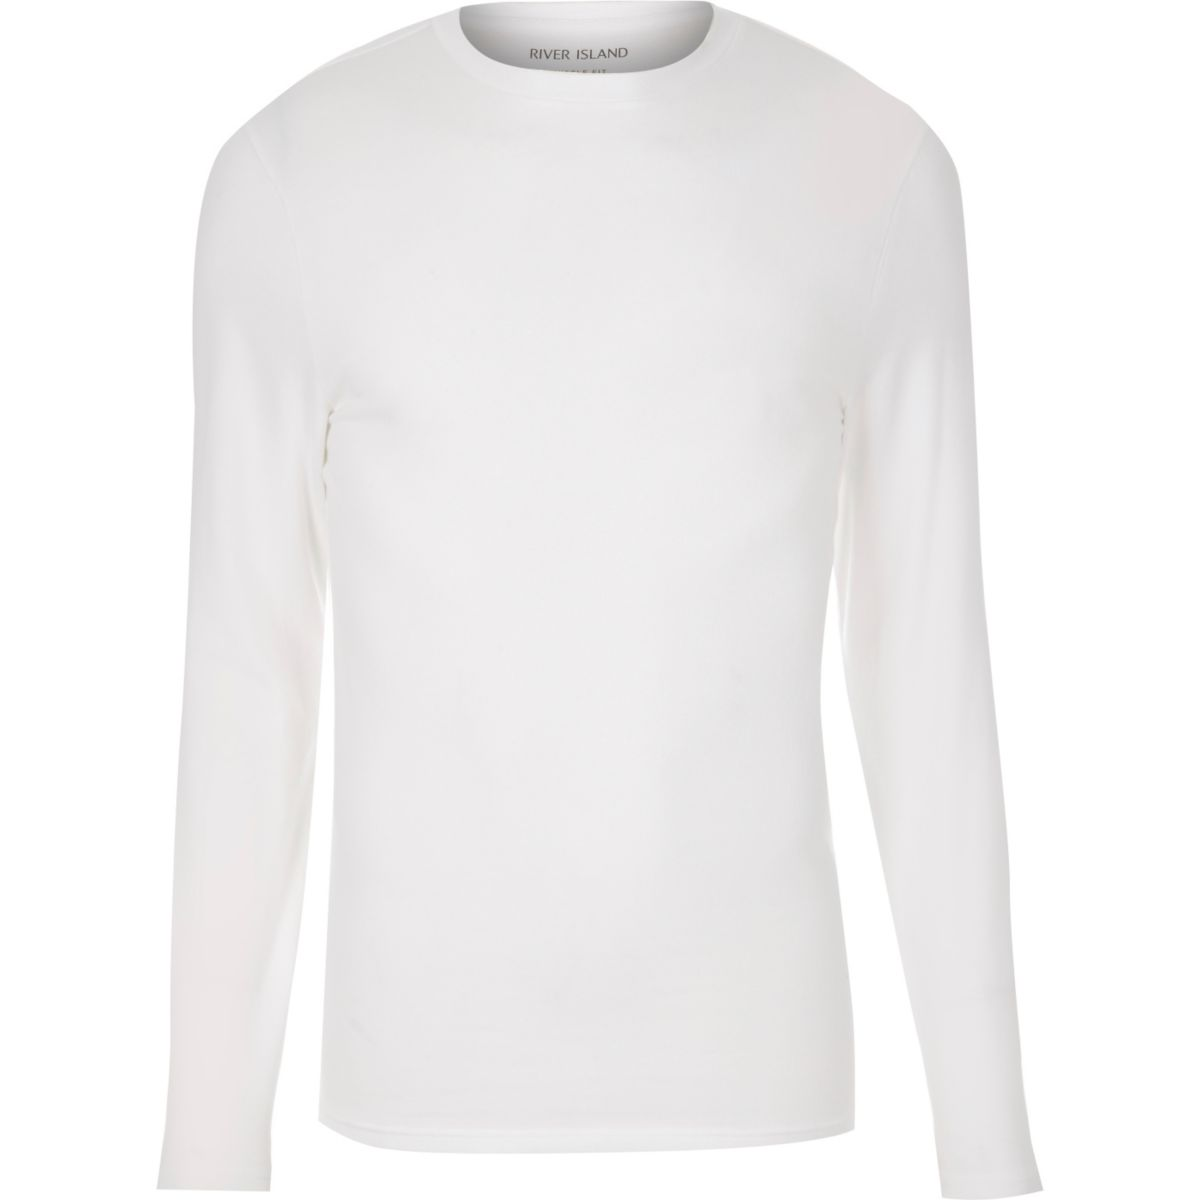 White muscle fit long sleeve t shirt t shirts vests for What is a long sleeve t shirt